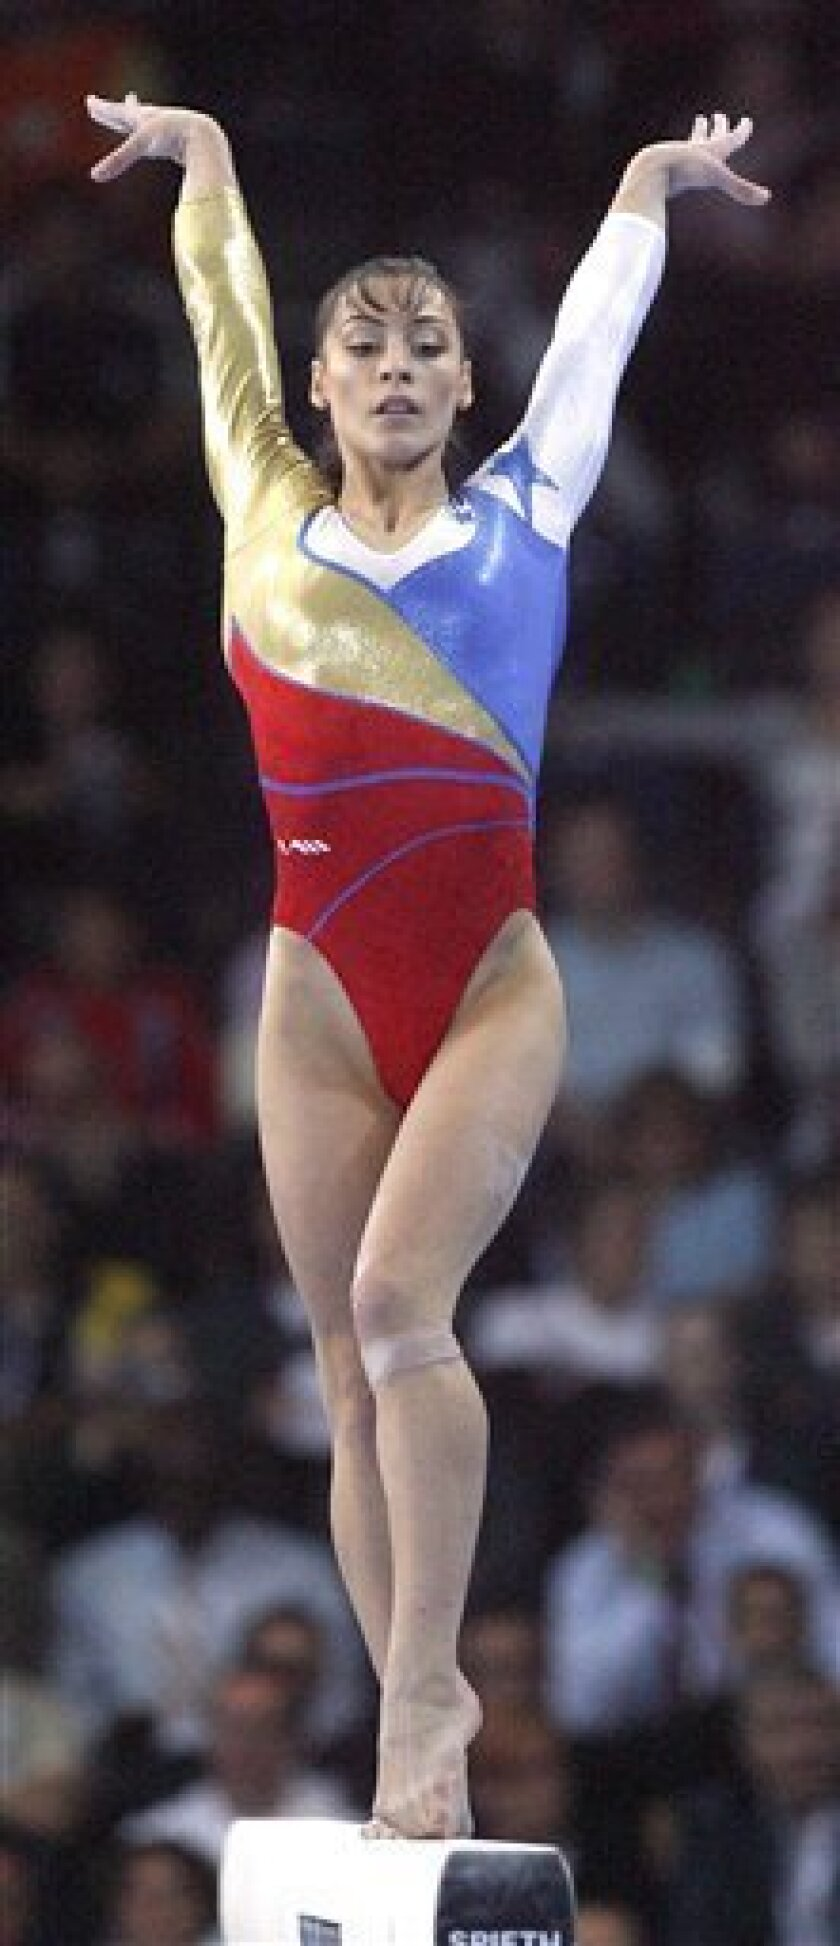 FILE - This Sept. 5, 2007, file photo shows gymnast Catalina Ponor, of Romania, competing on the beam during the women's team final of the Gymnastics World Championships, in Stuttgart, Germany. Back in her element after deciding she's not cut out for the sedate life of a retiree, the 24-year-old is giving the Romanians some badly needed swagger as they rebuild their once-proud women's program. (AP Photo/Michael Sohn, File)